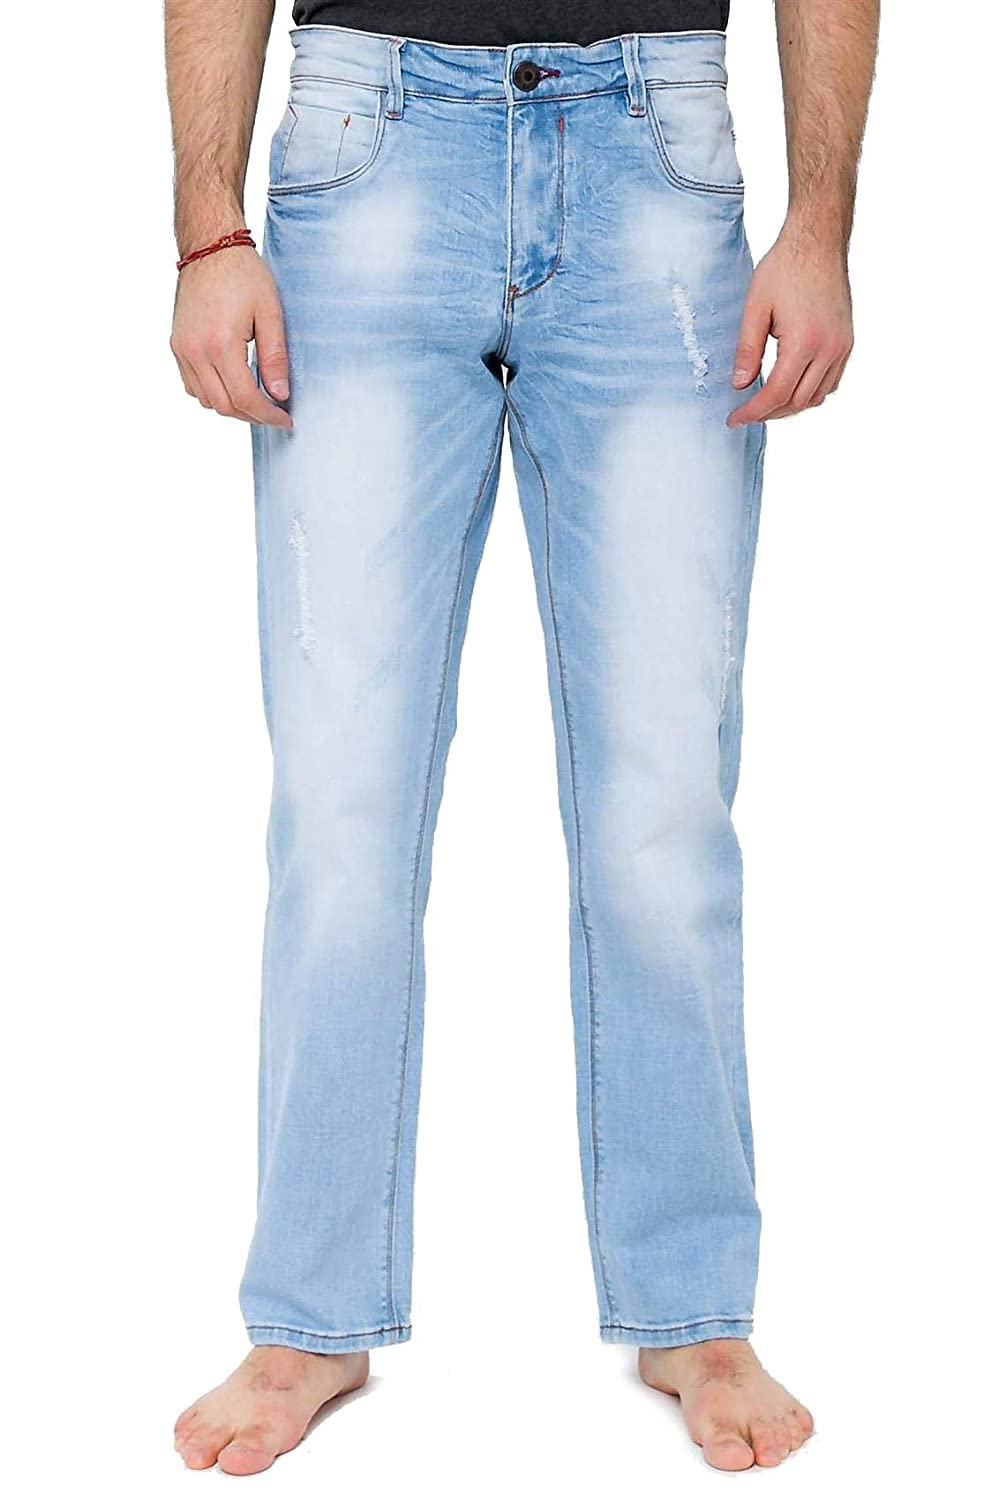 Light Blue RNZ PREMIUM Mens Slim Straight Fit Jean w Faded Look and Whiskering S734